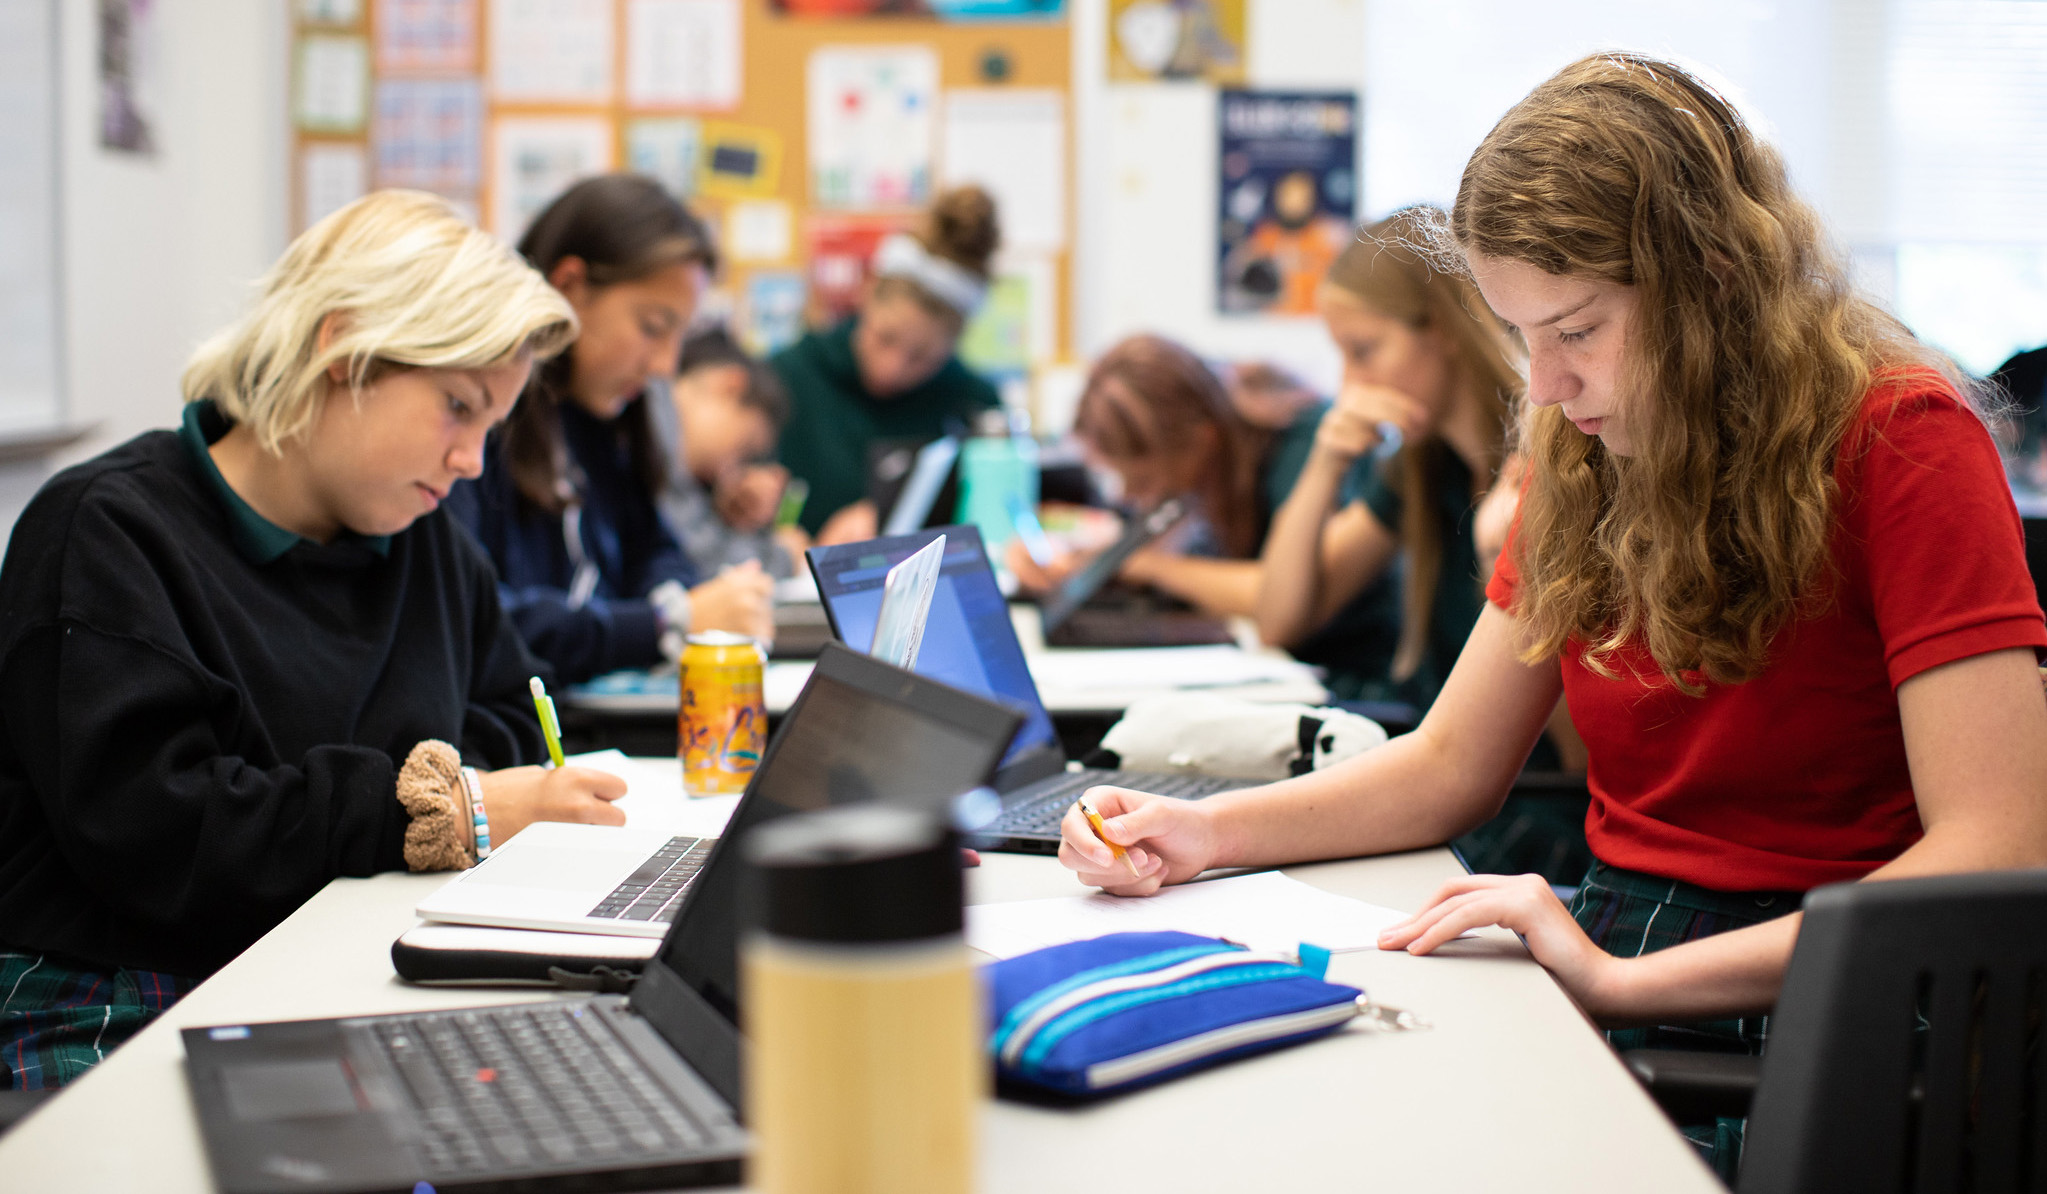 Computer science students at The Ellis School code together in class.